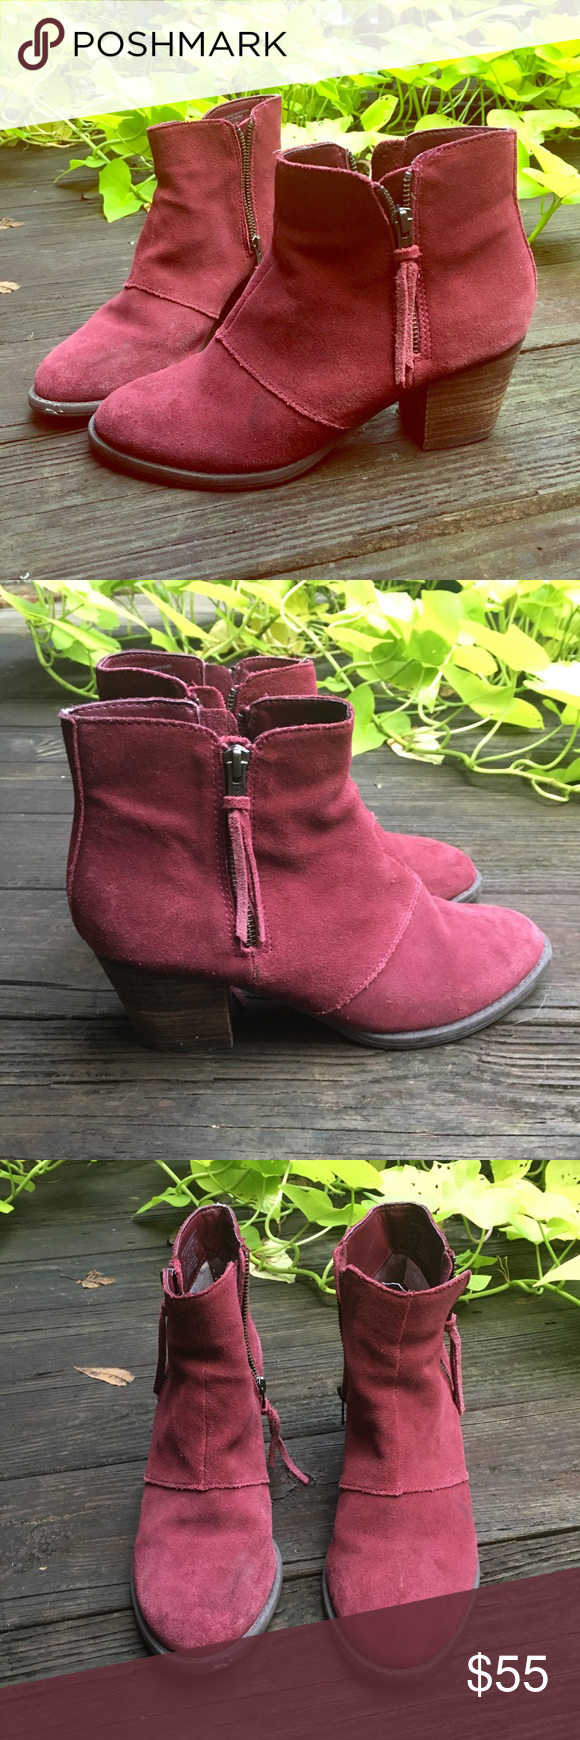 350496048ac Maroon Suede Booties Maroon suede booties by American Eagle. Stacked heel